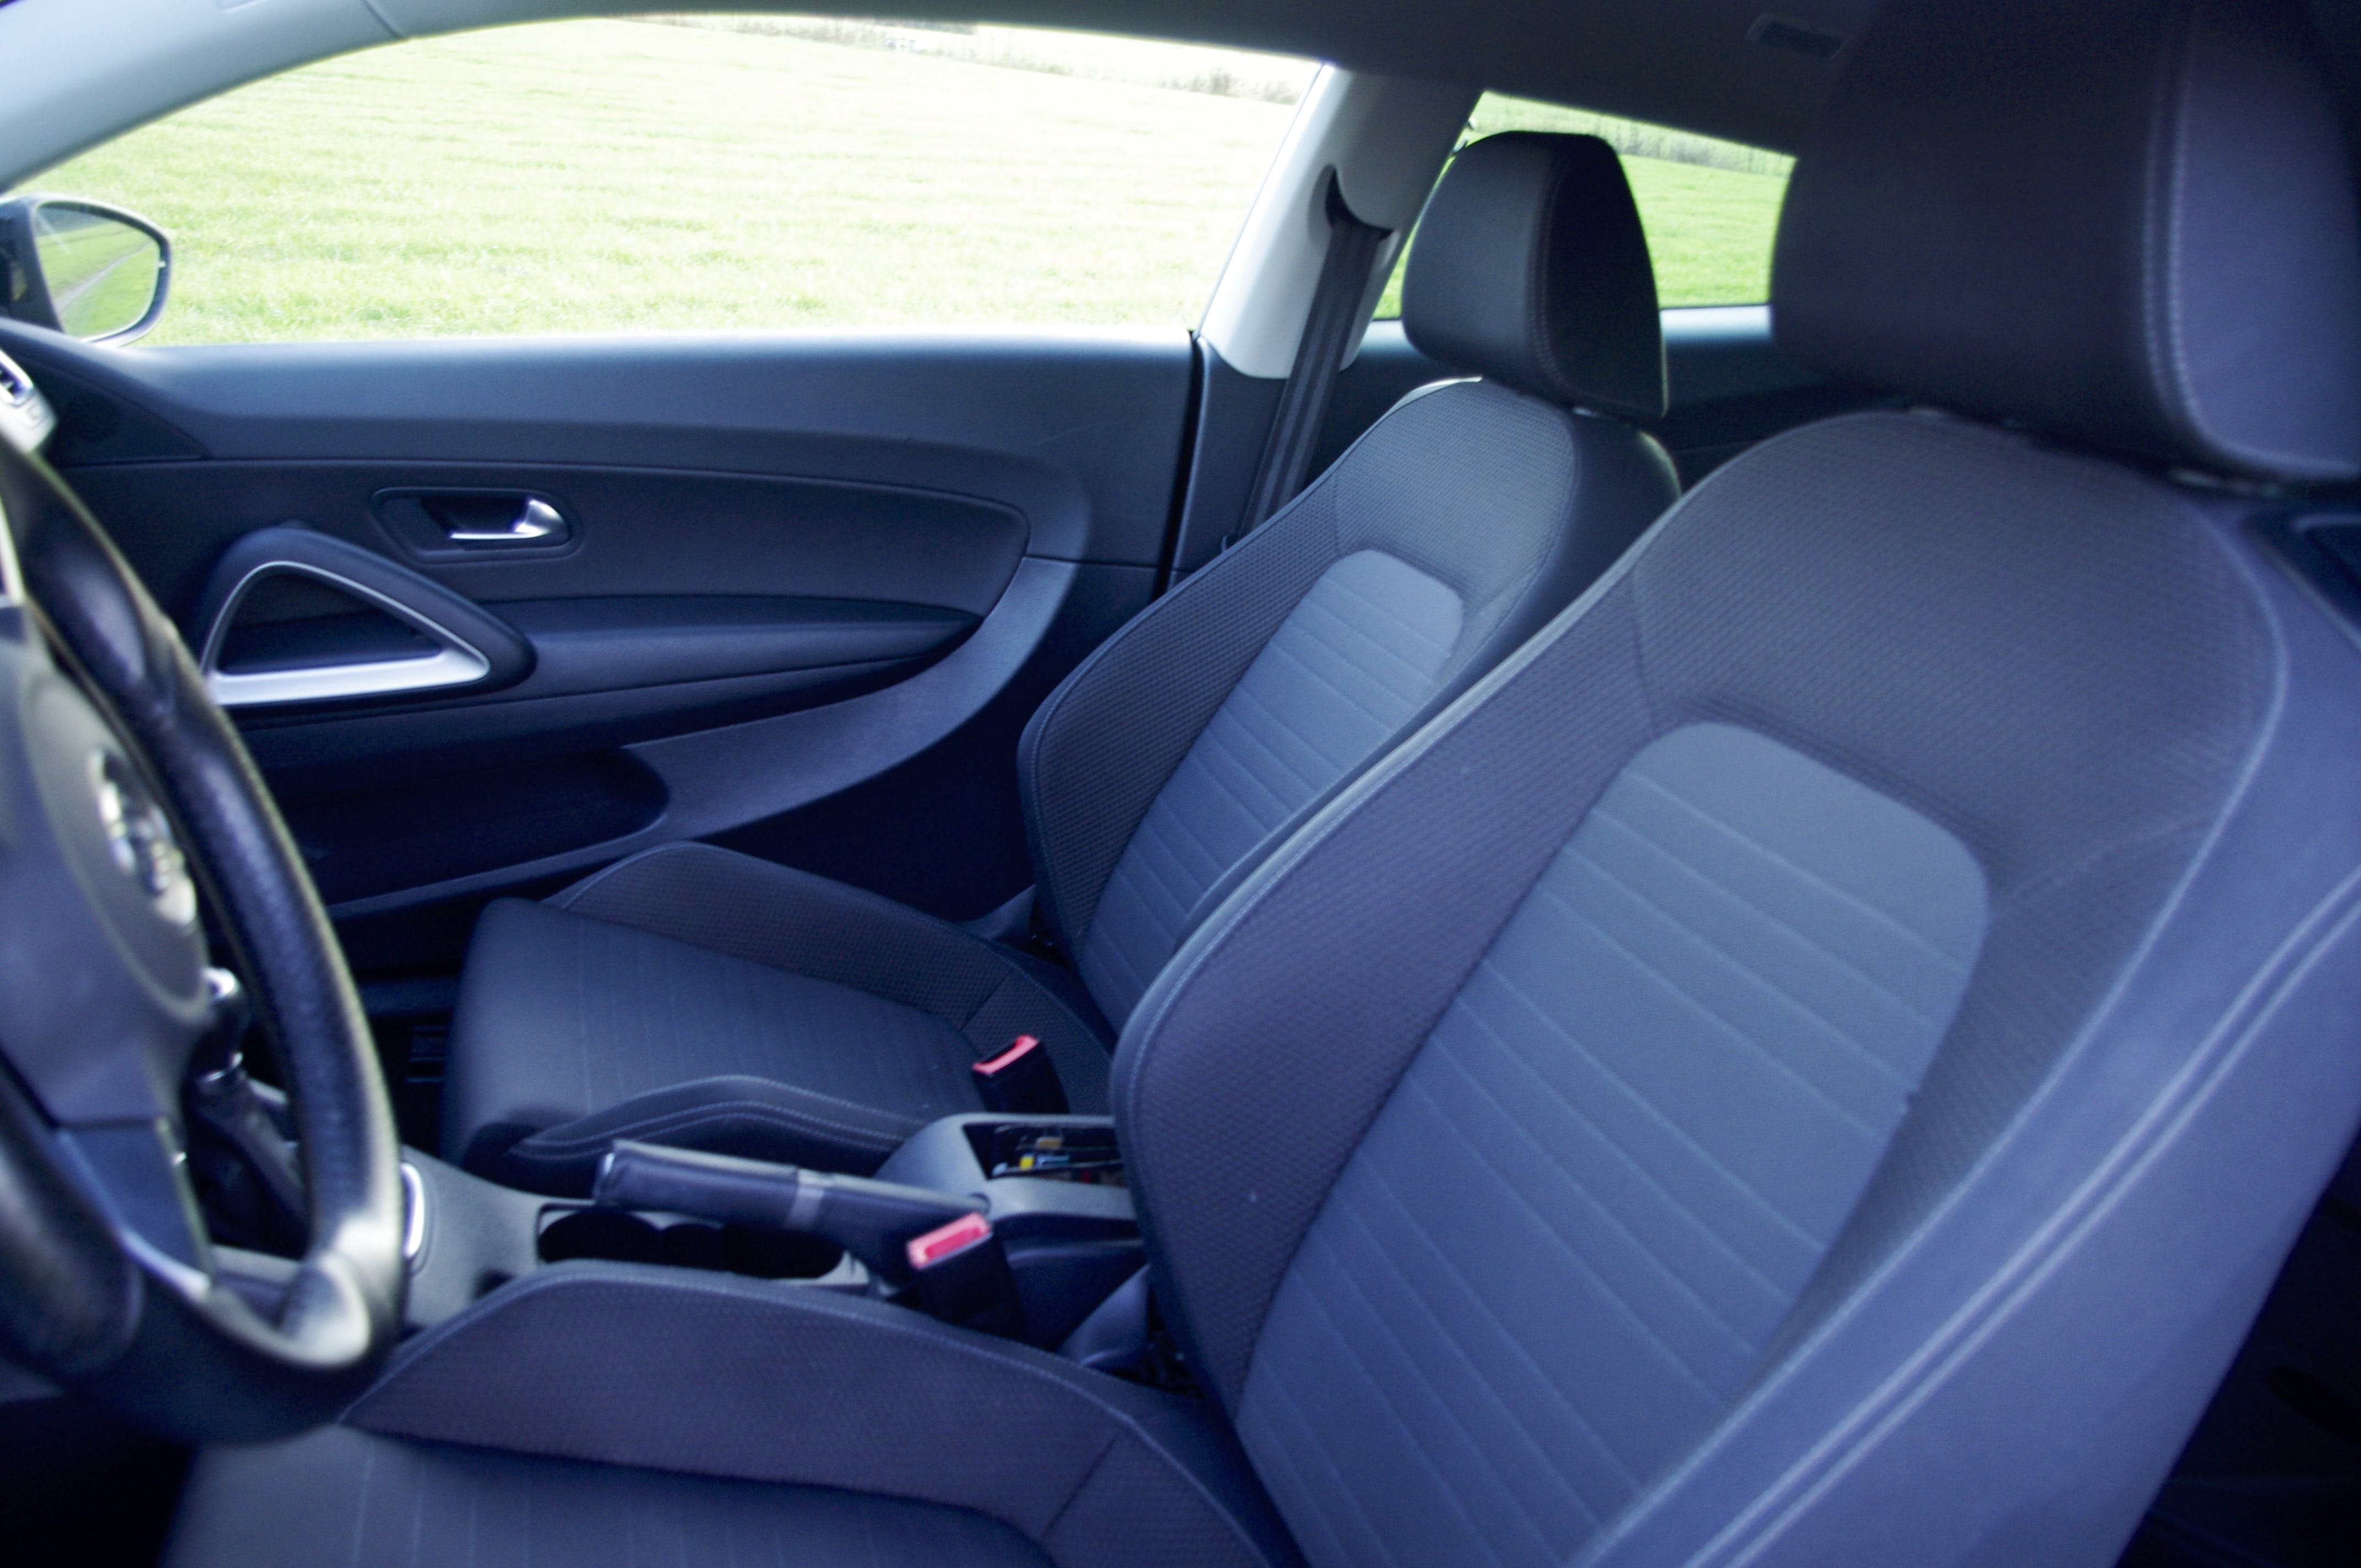 VW Scirocco 3 1.4 Sport Coupe Gengenbach mit Audio-/iPod-Zugang